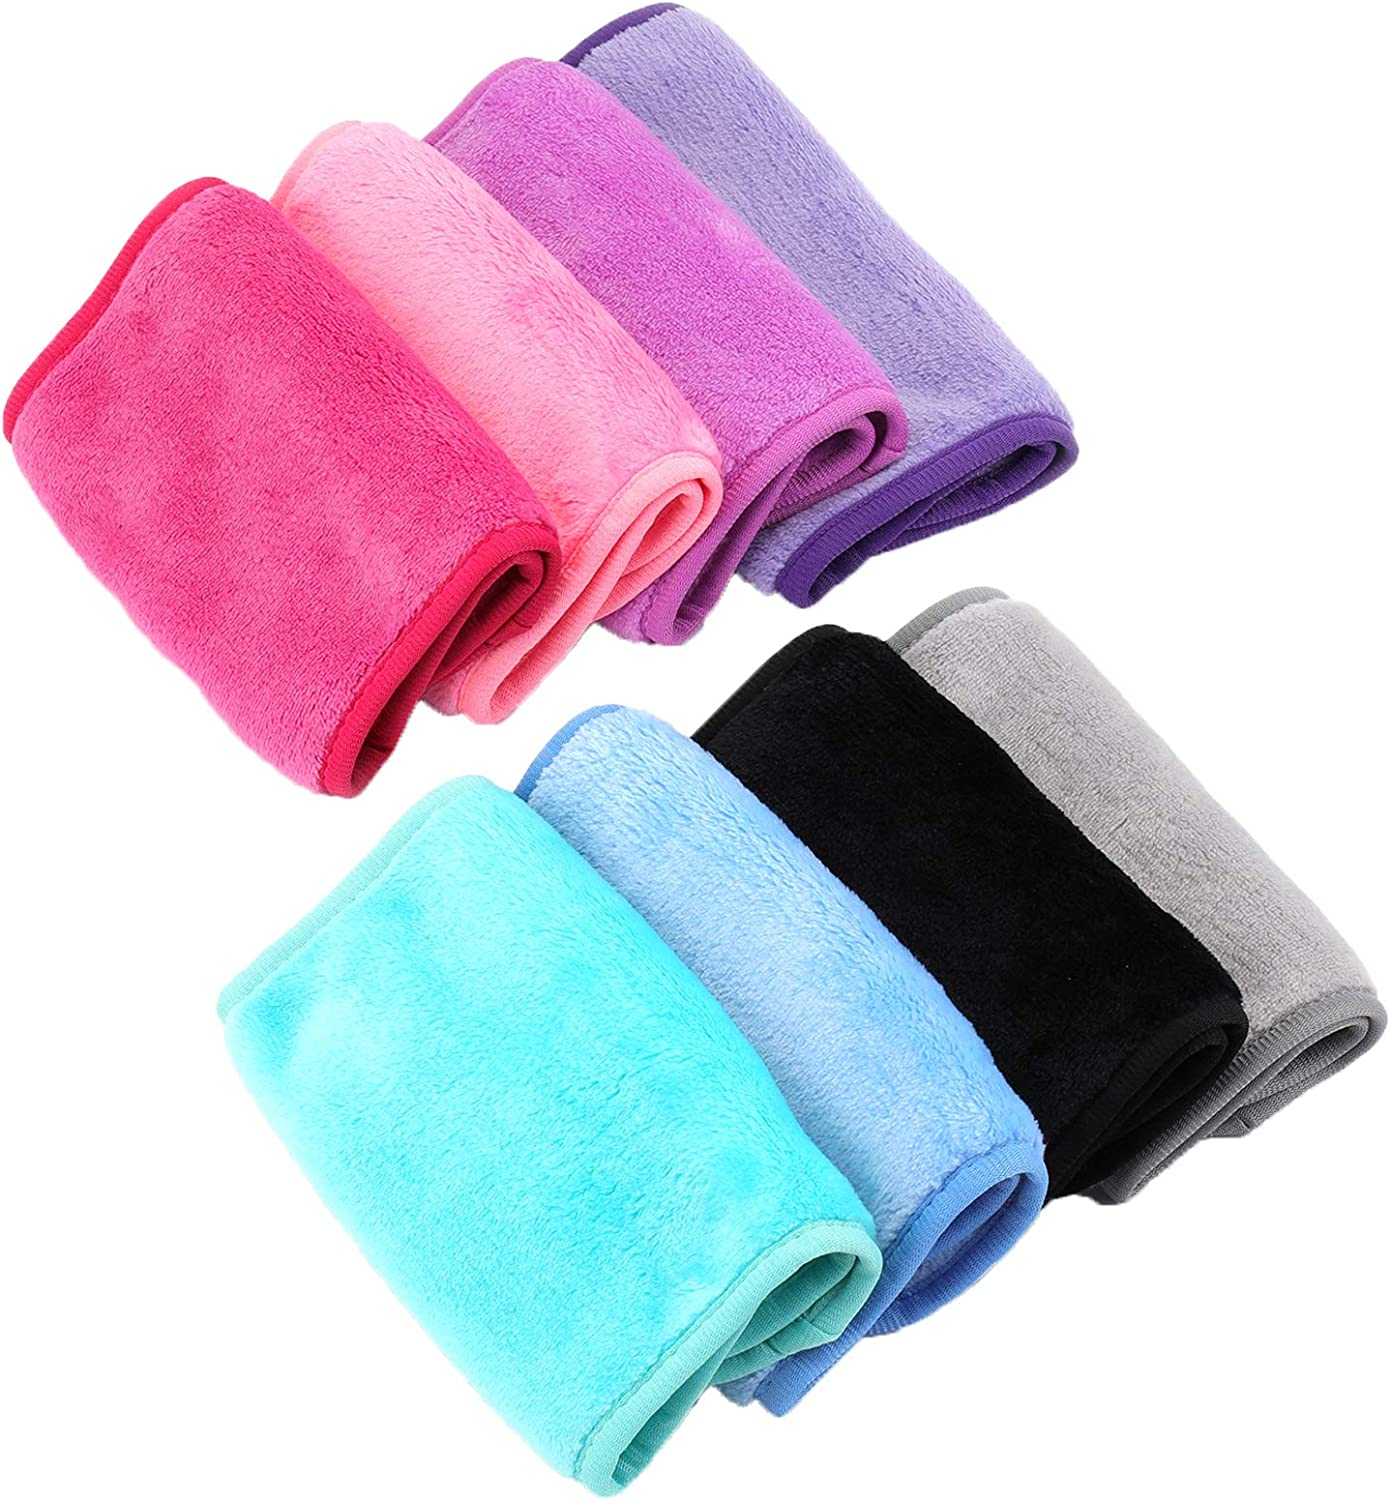 Bekith Sale price 8 Pack Makeup Remover New York Mall Reusable Cloth Cleansin Microfiber